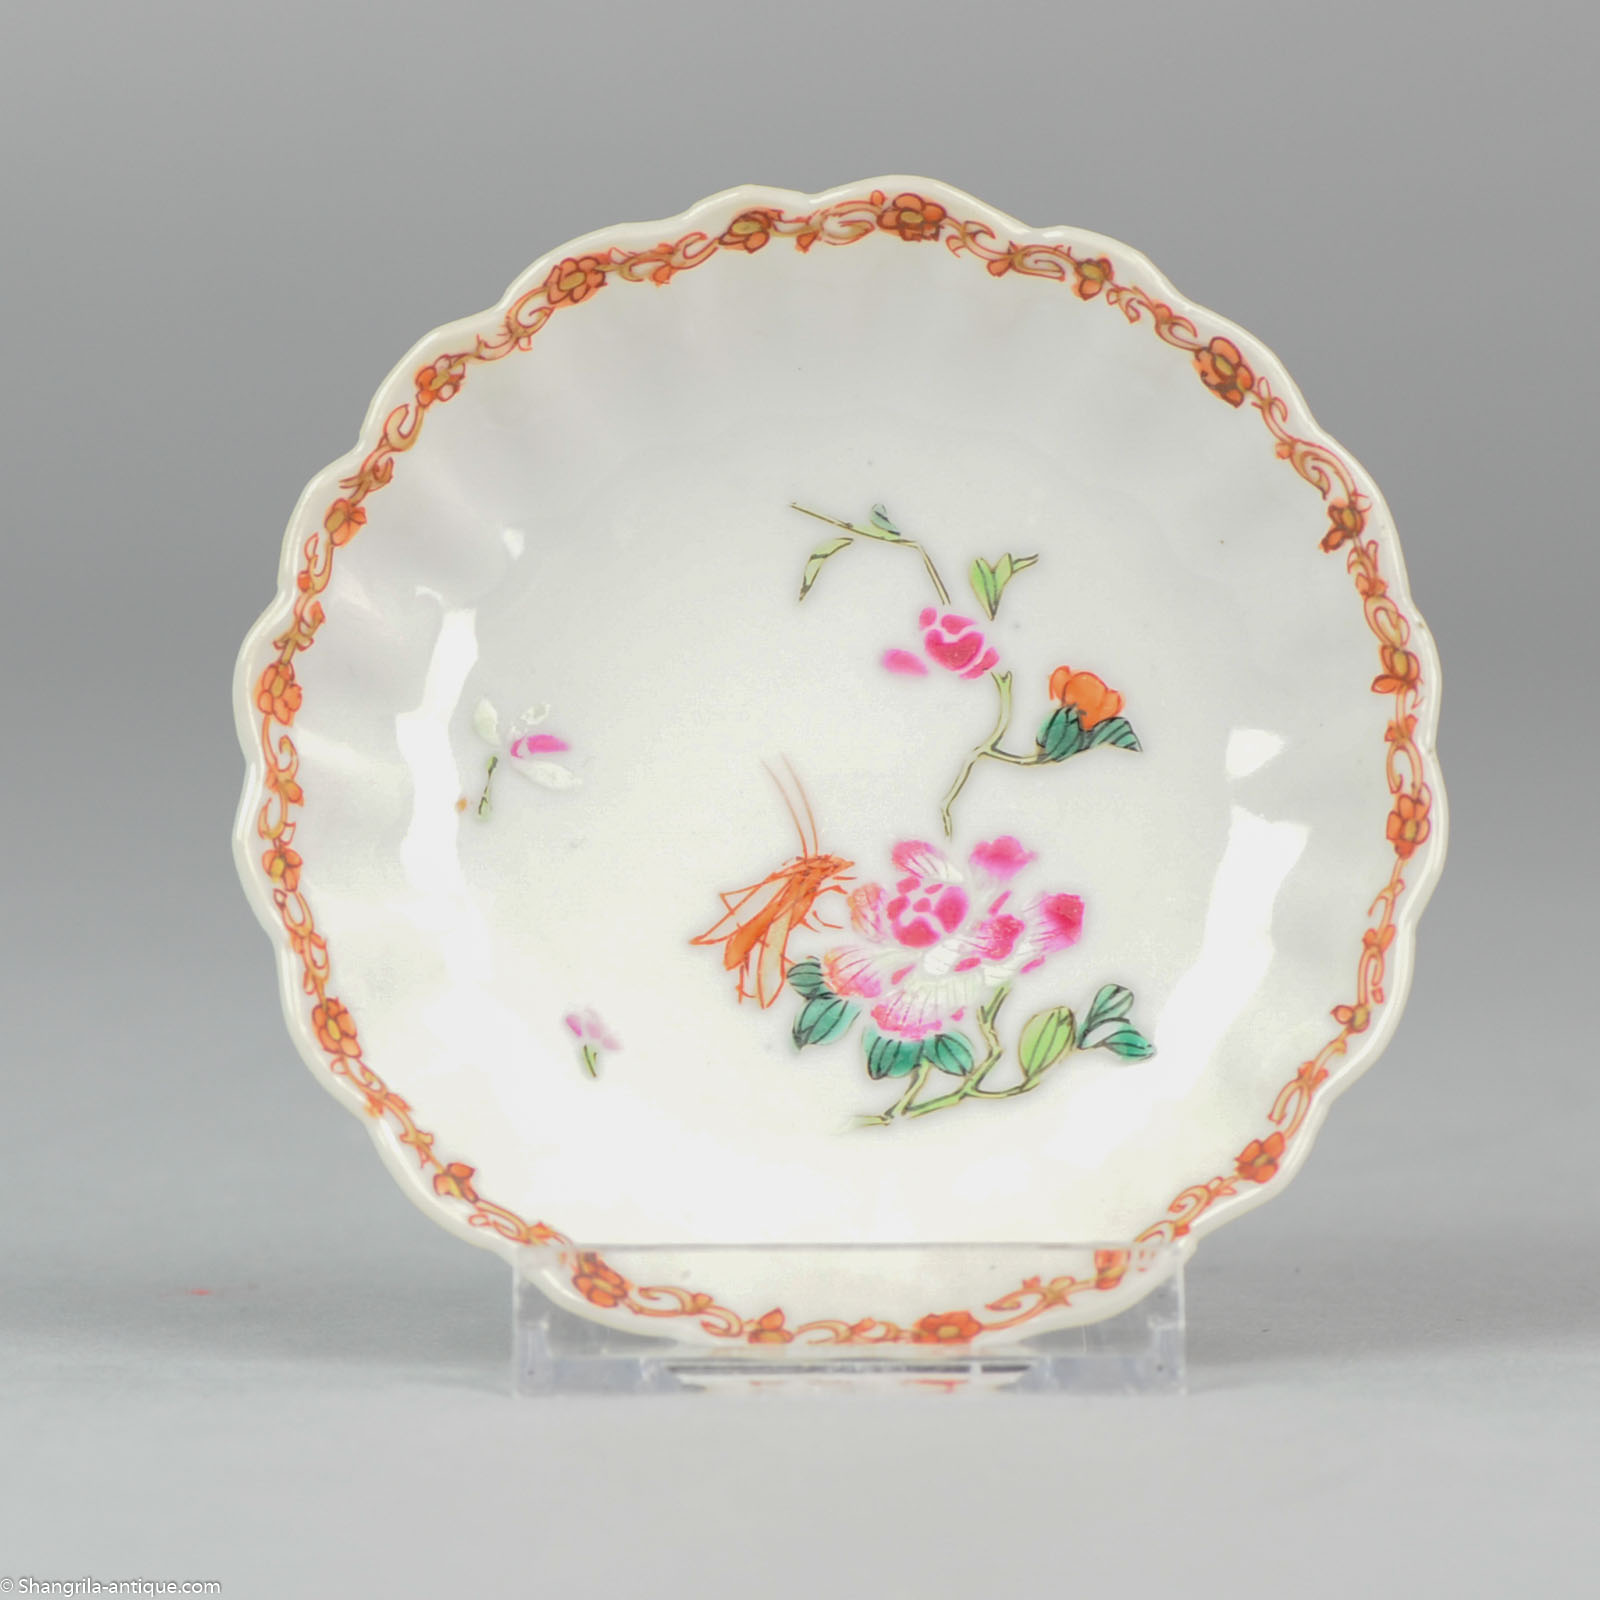 18C Chinese porcelain famille rose dish Lobbed Grasshopper & 18C Chinese porcelain famille rose dish Lobbed Grasshopper China ...